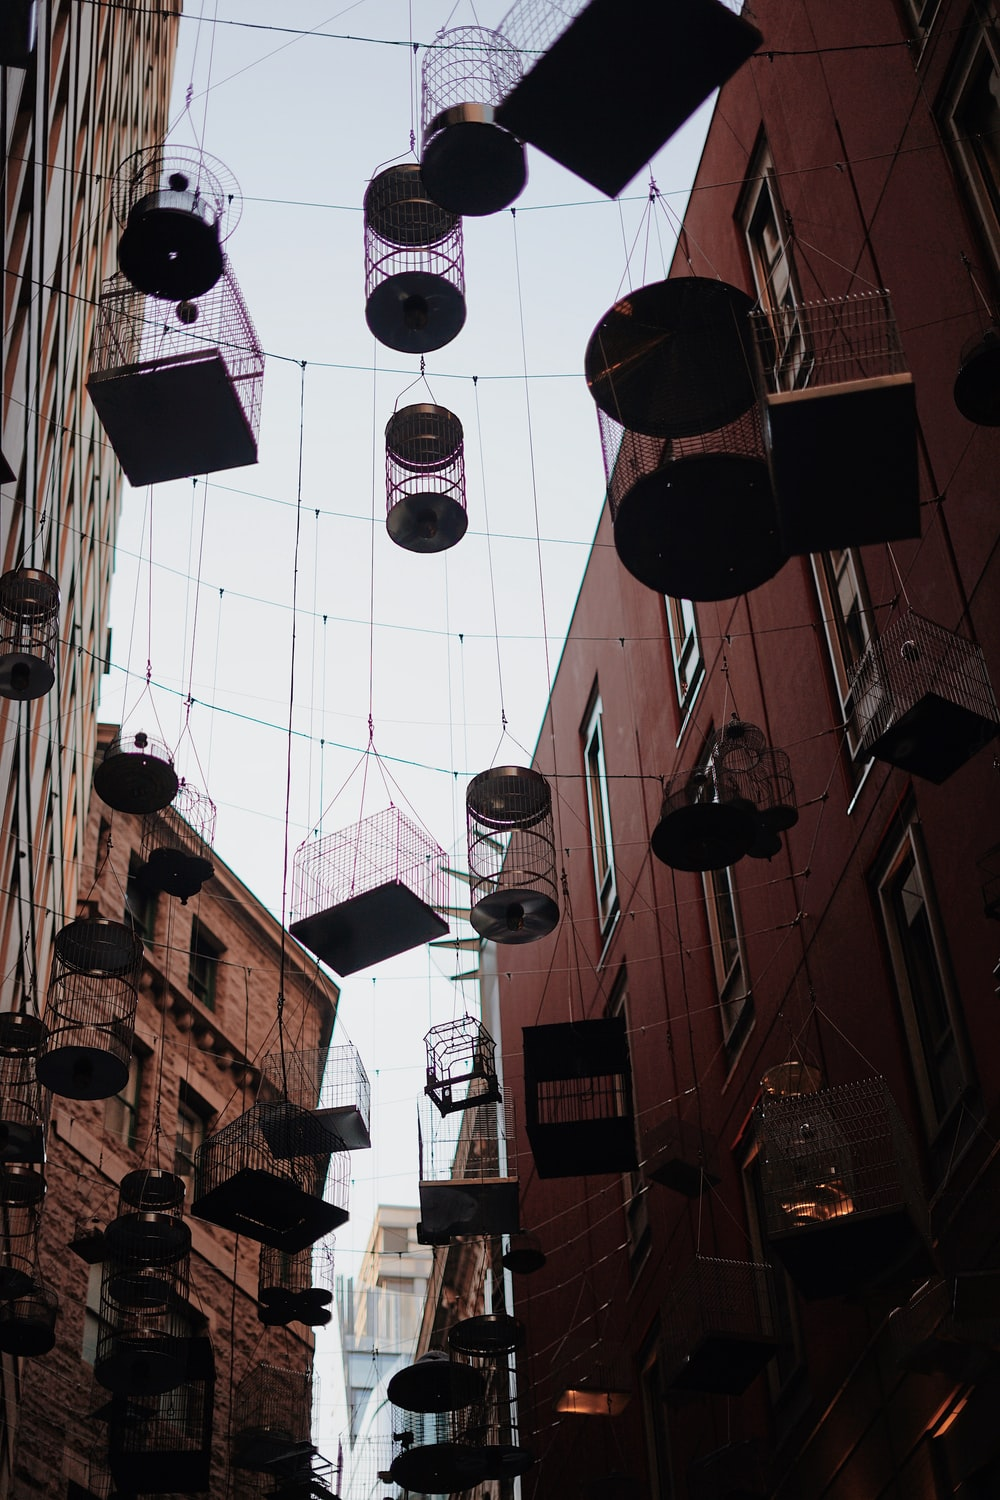 silhouette photo of metal birdcages hanged on cables between buildings